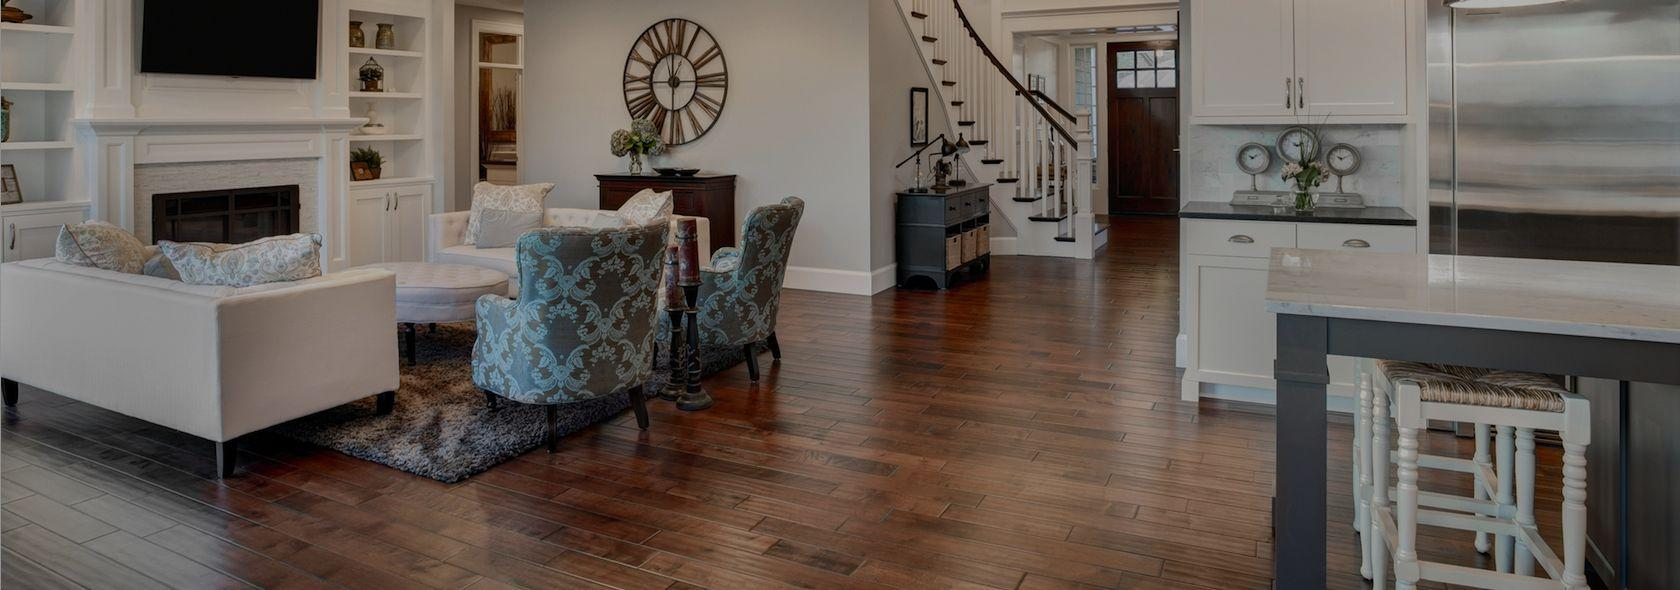 Impression Floors Kelowna BC | Dining Room With Beaulieu Engineered Hardwood Flooring